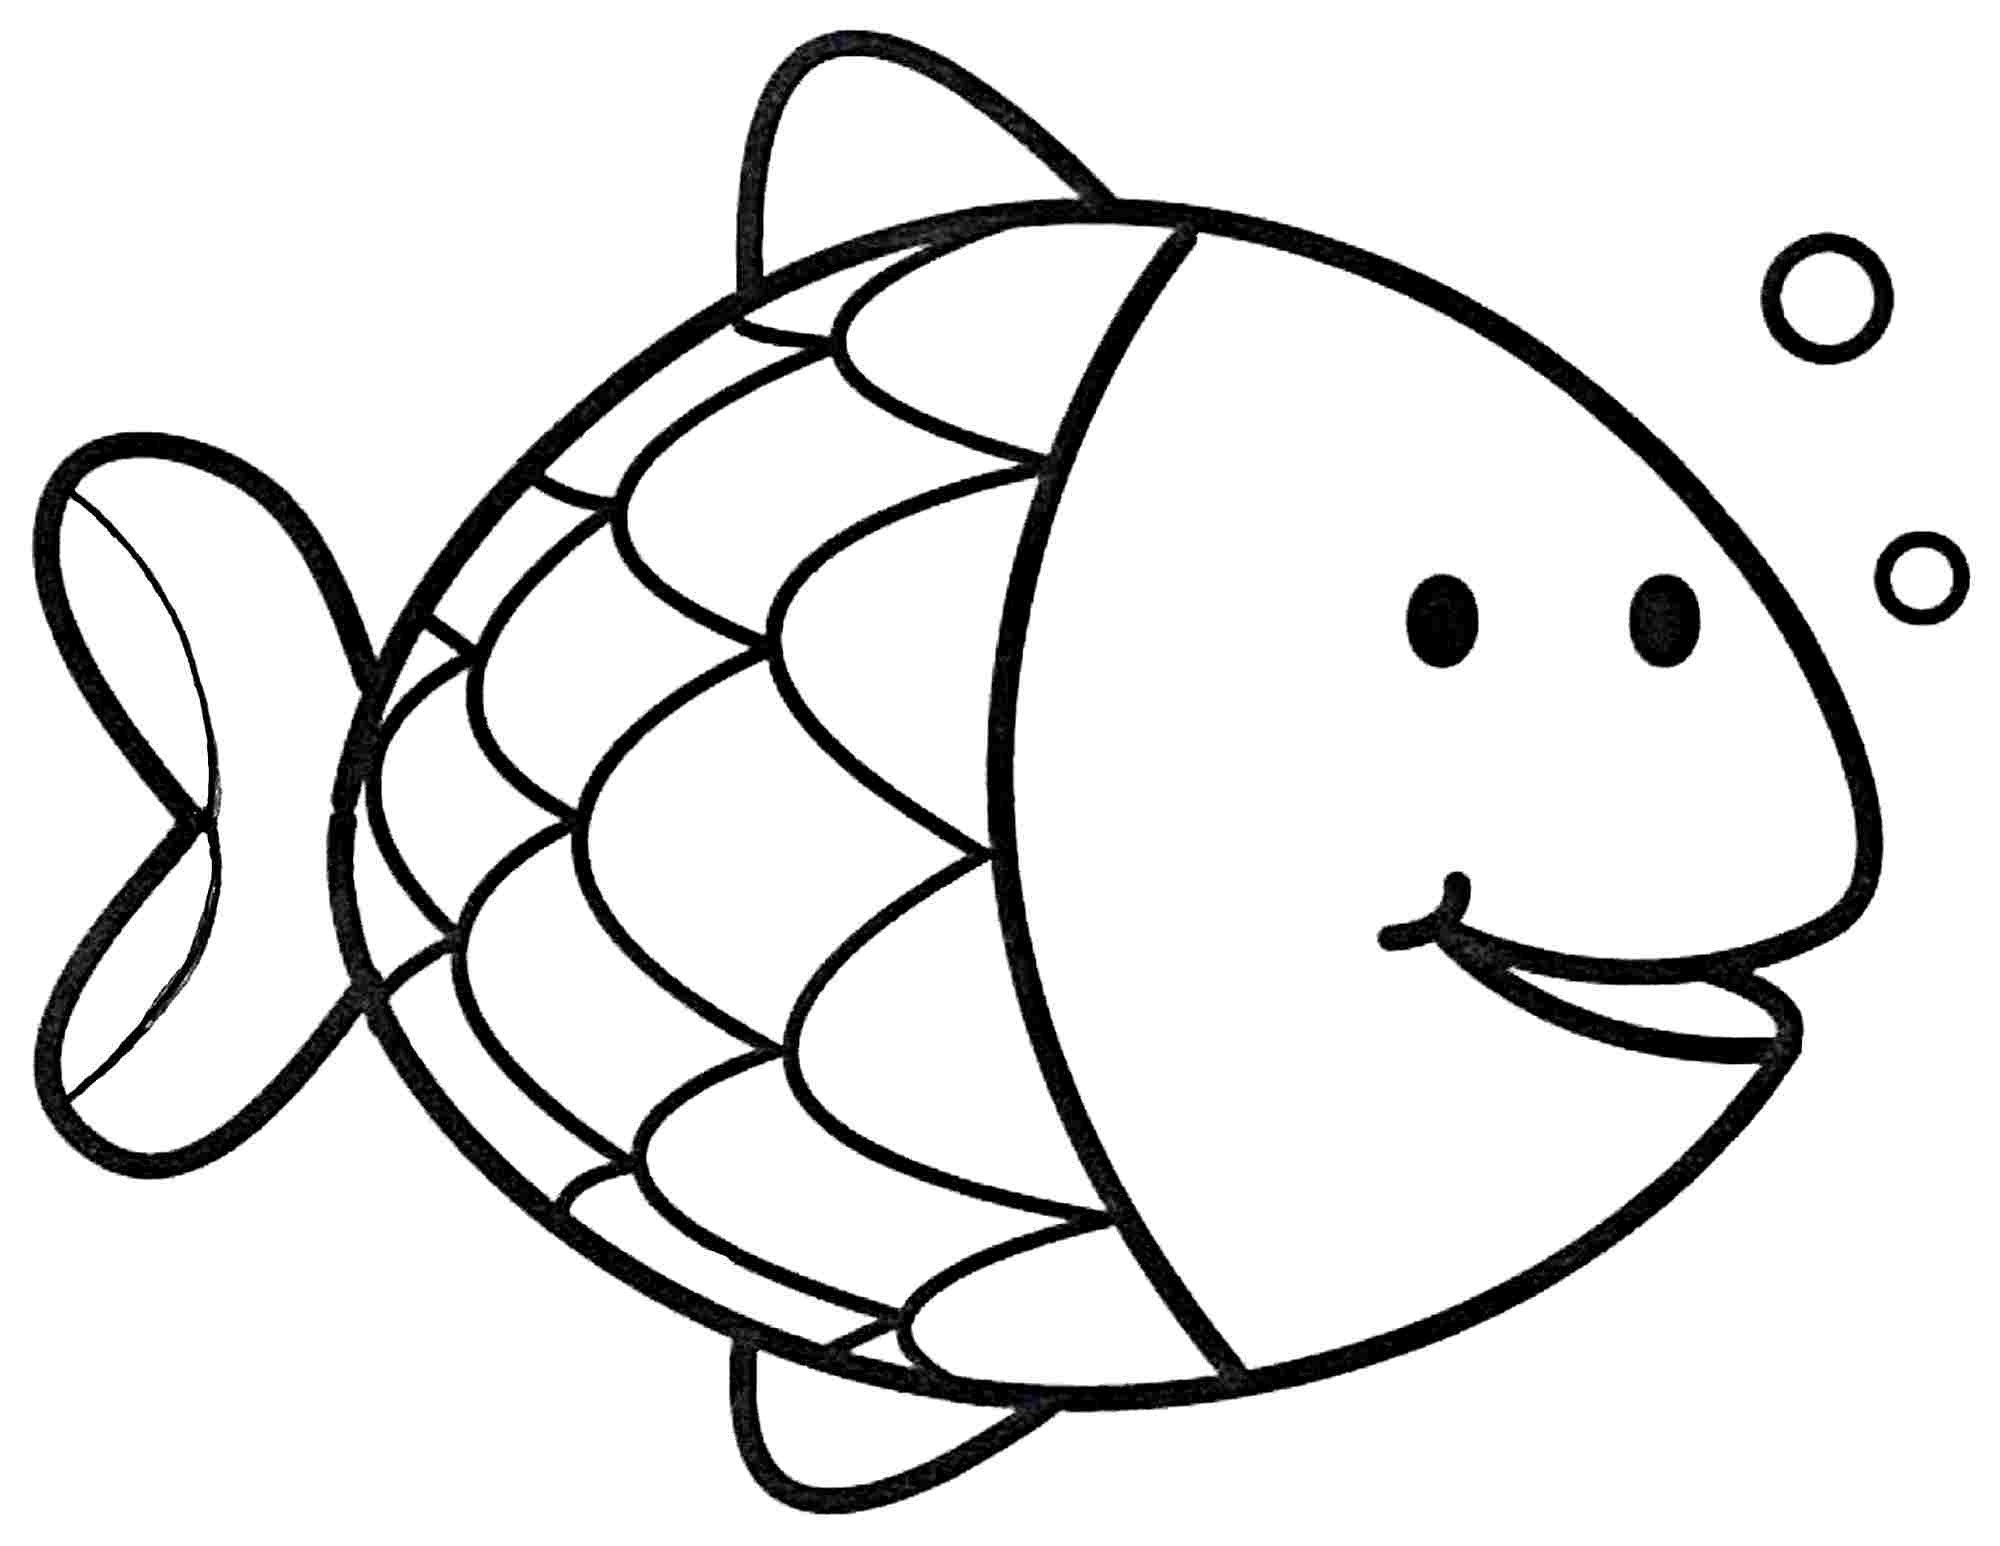 Crayola Fish Coloring Pages Coloring Pages Book Coloring Free Christmas Kids On Preschool The